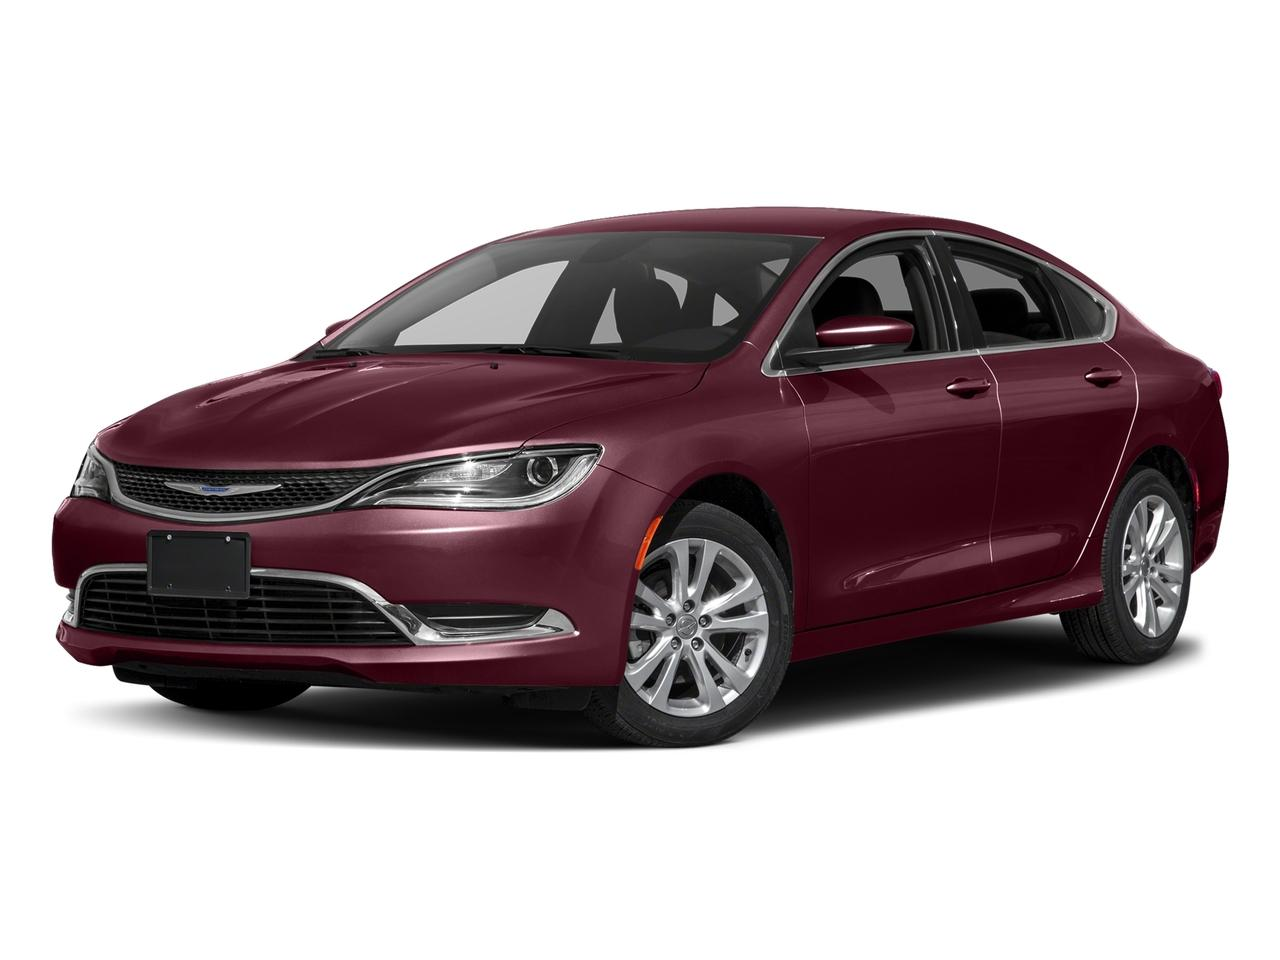 2017 Chrysler 200 Vehicle Photo in TEMPLE, TX 76504-3447